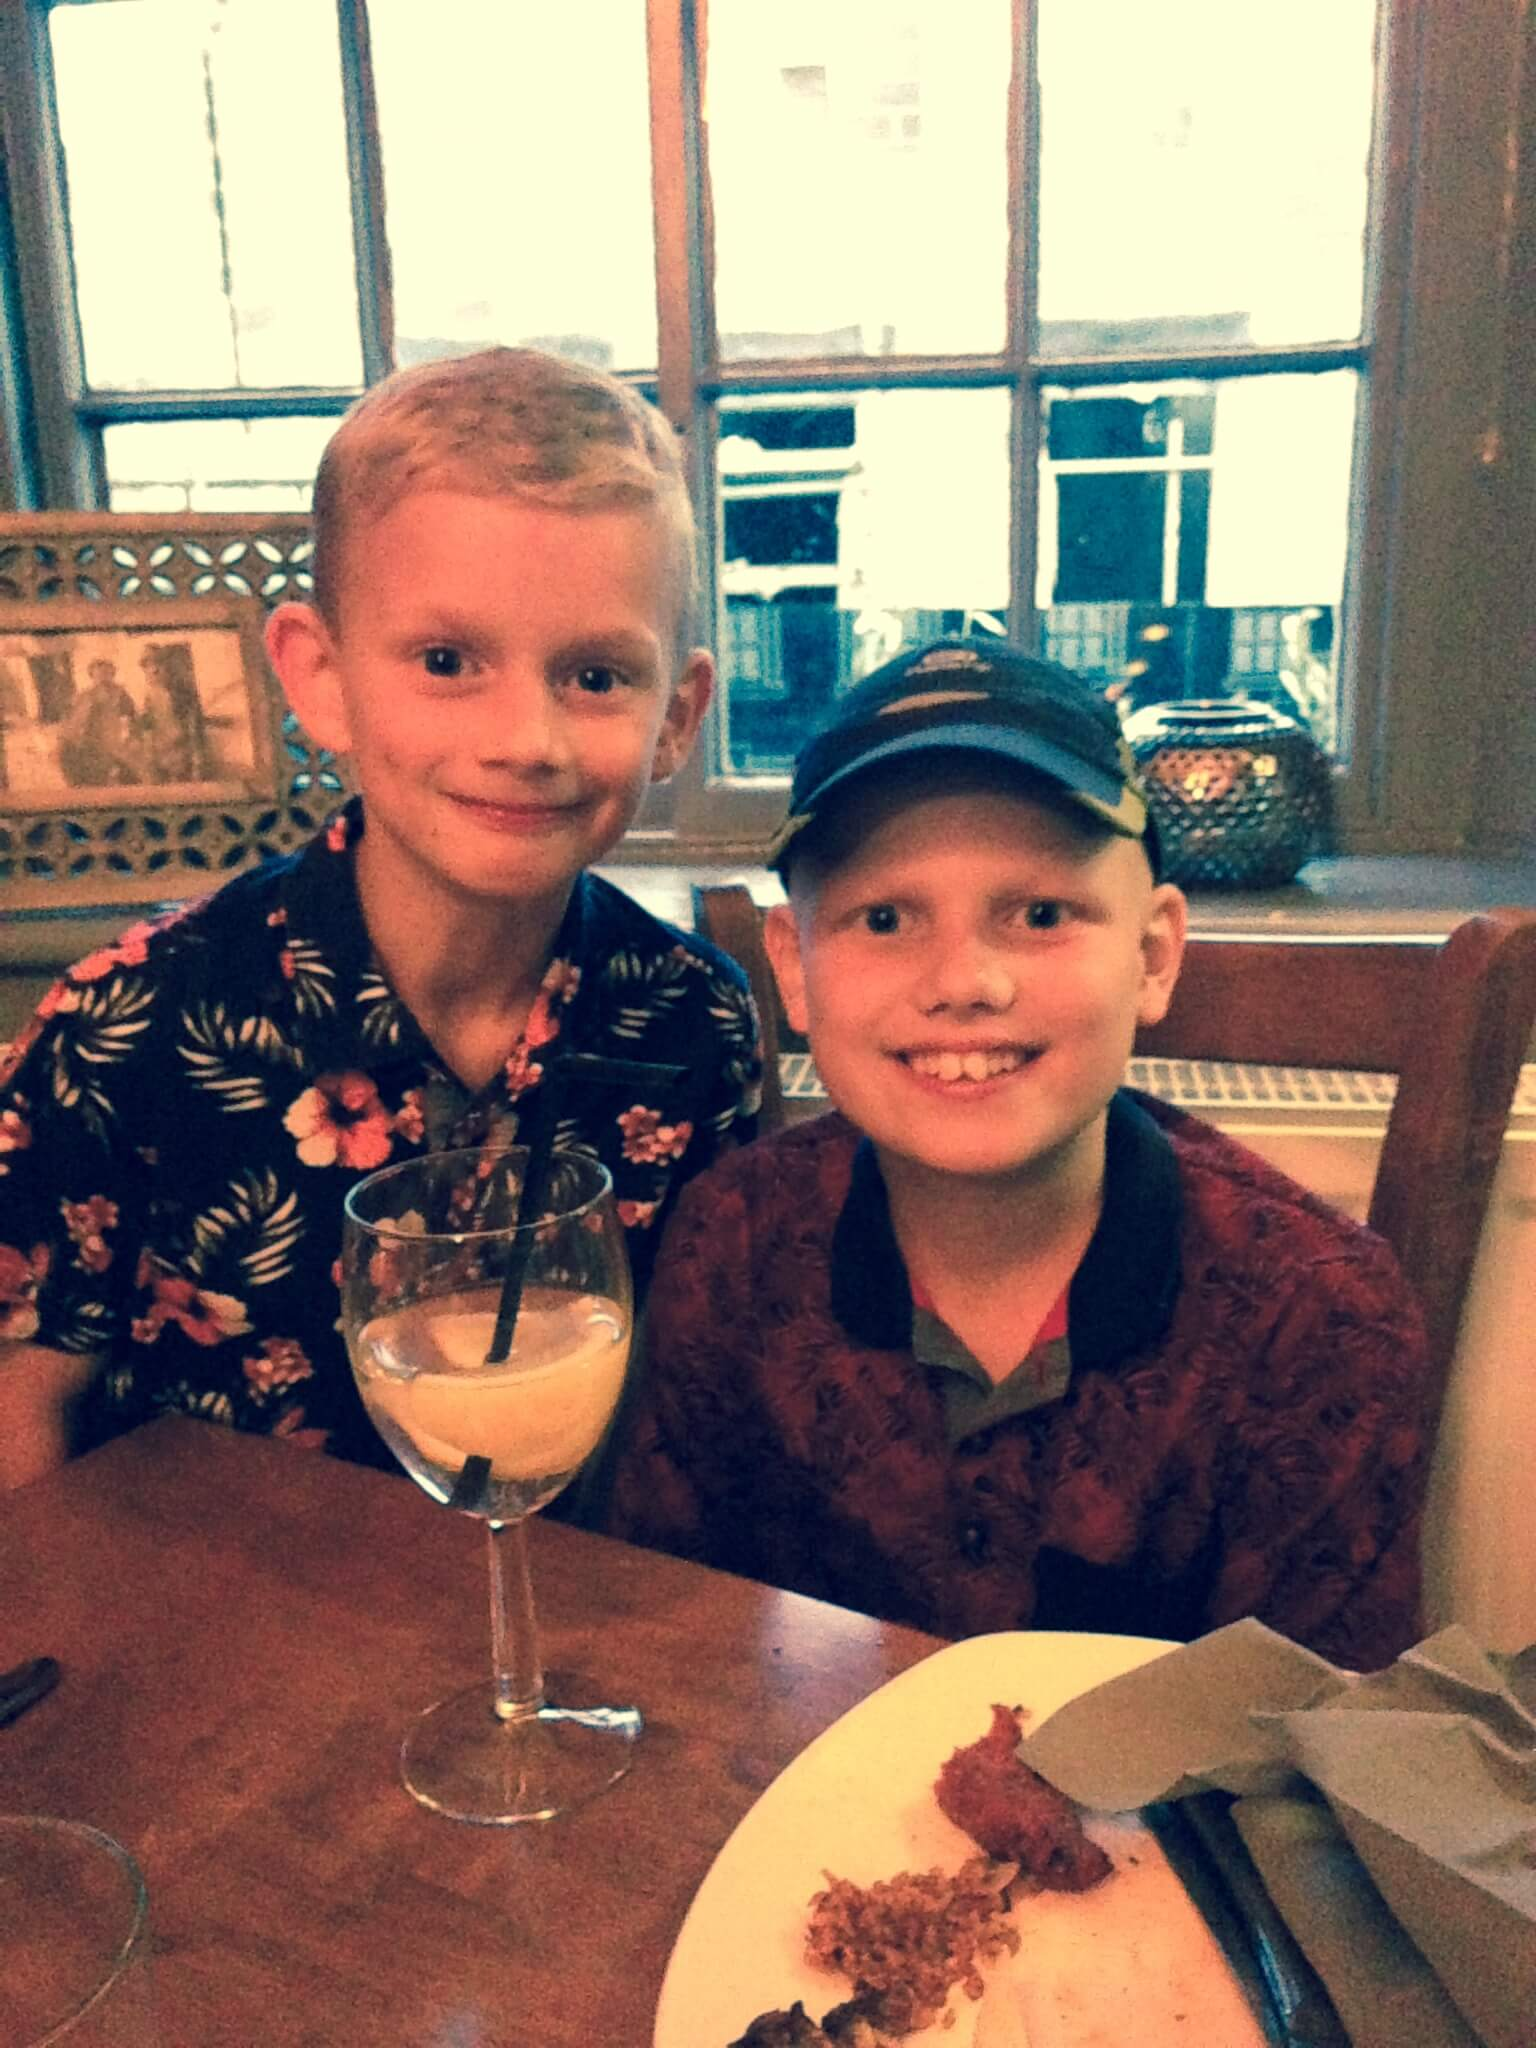 Isaac and brother Noah at meal at end of phase 4